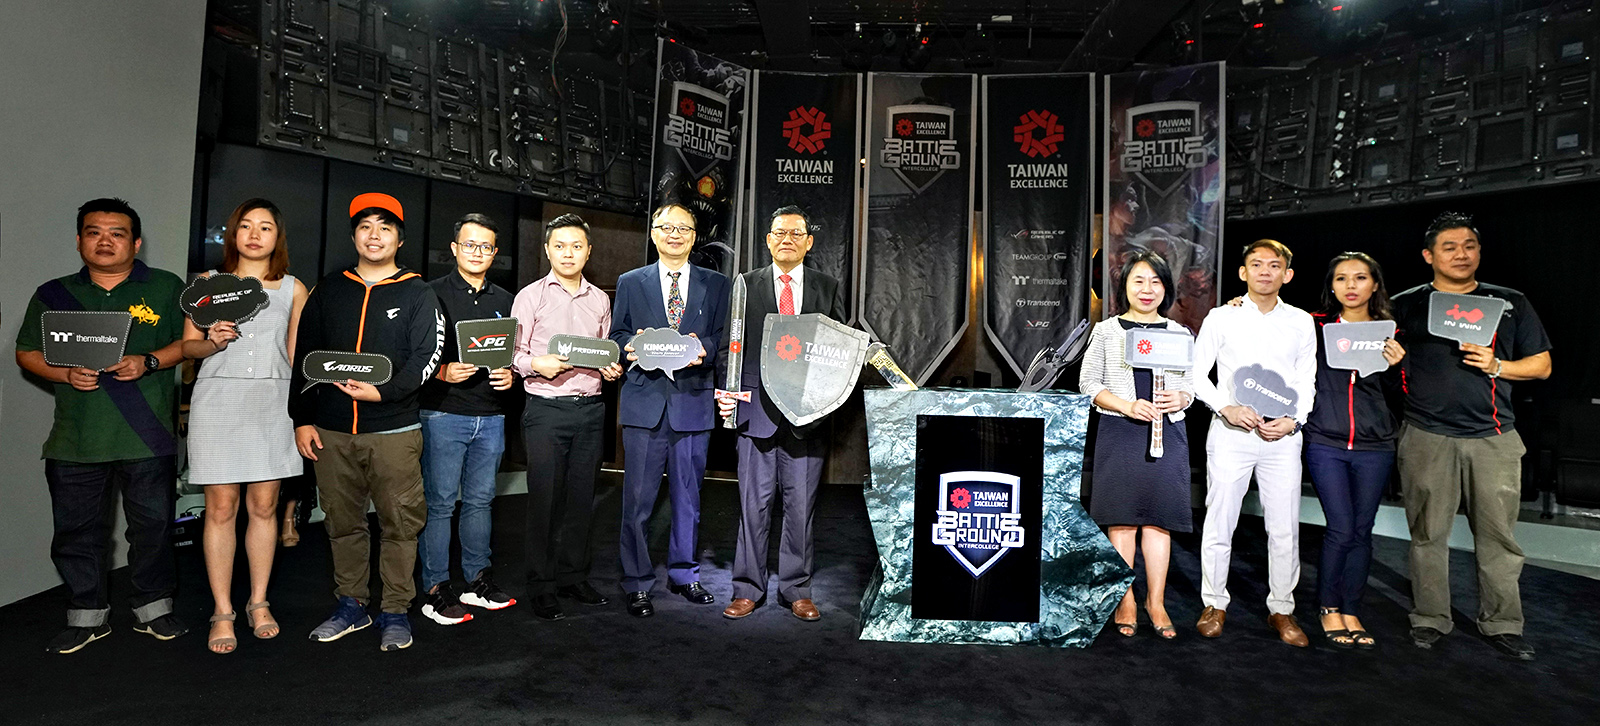 Taiwan Excellence Intercollege Battleground 2018 (TEIB)